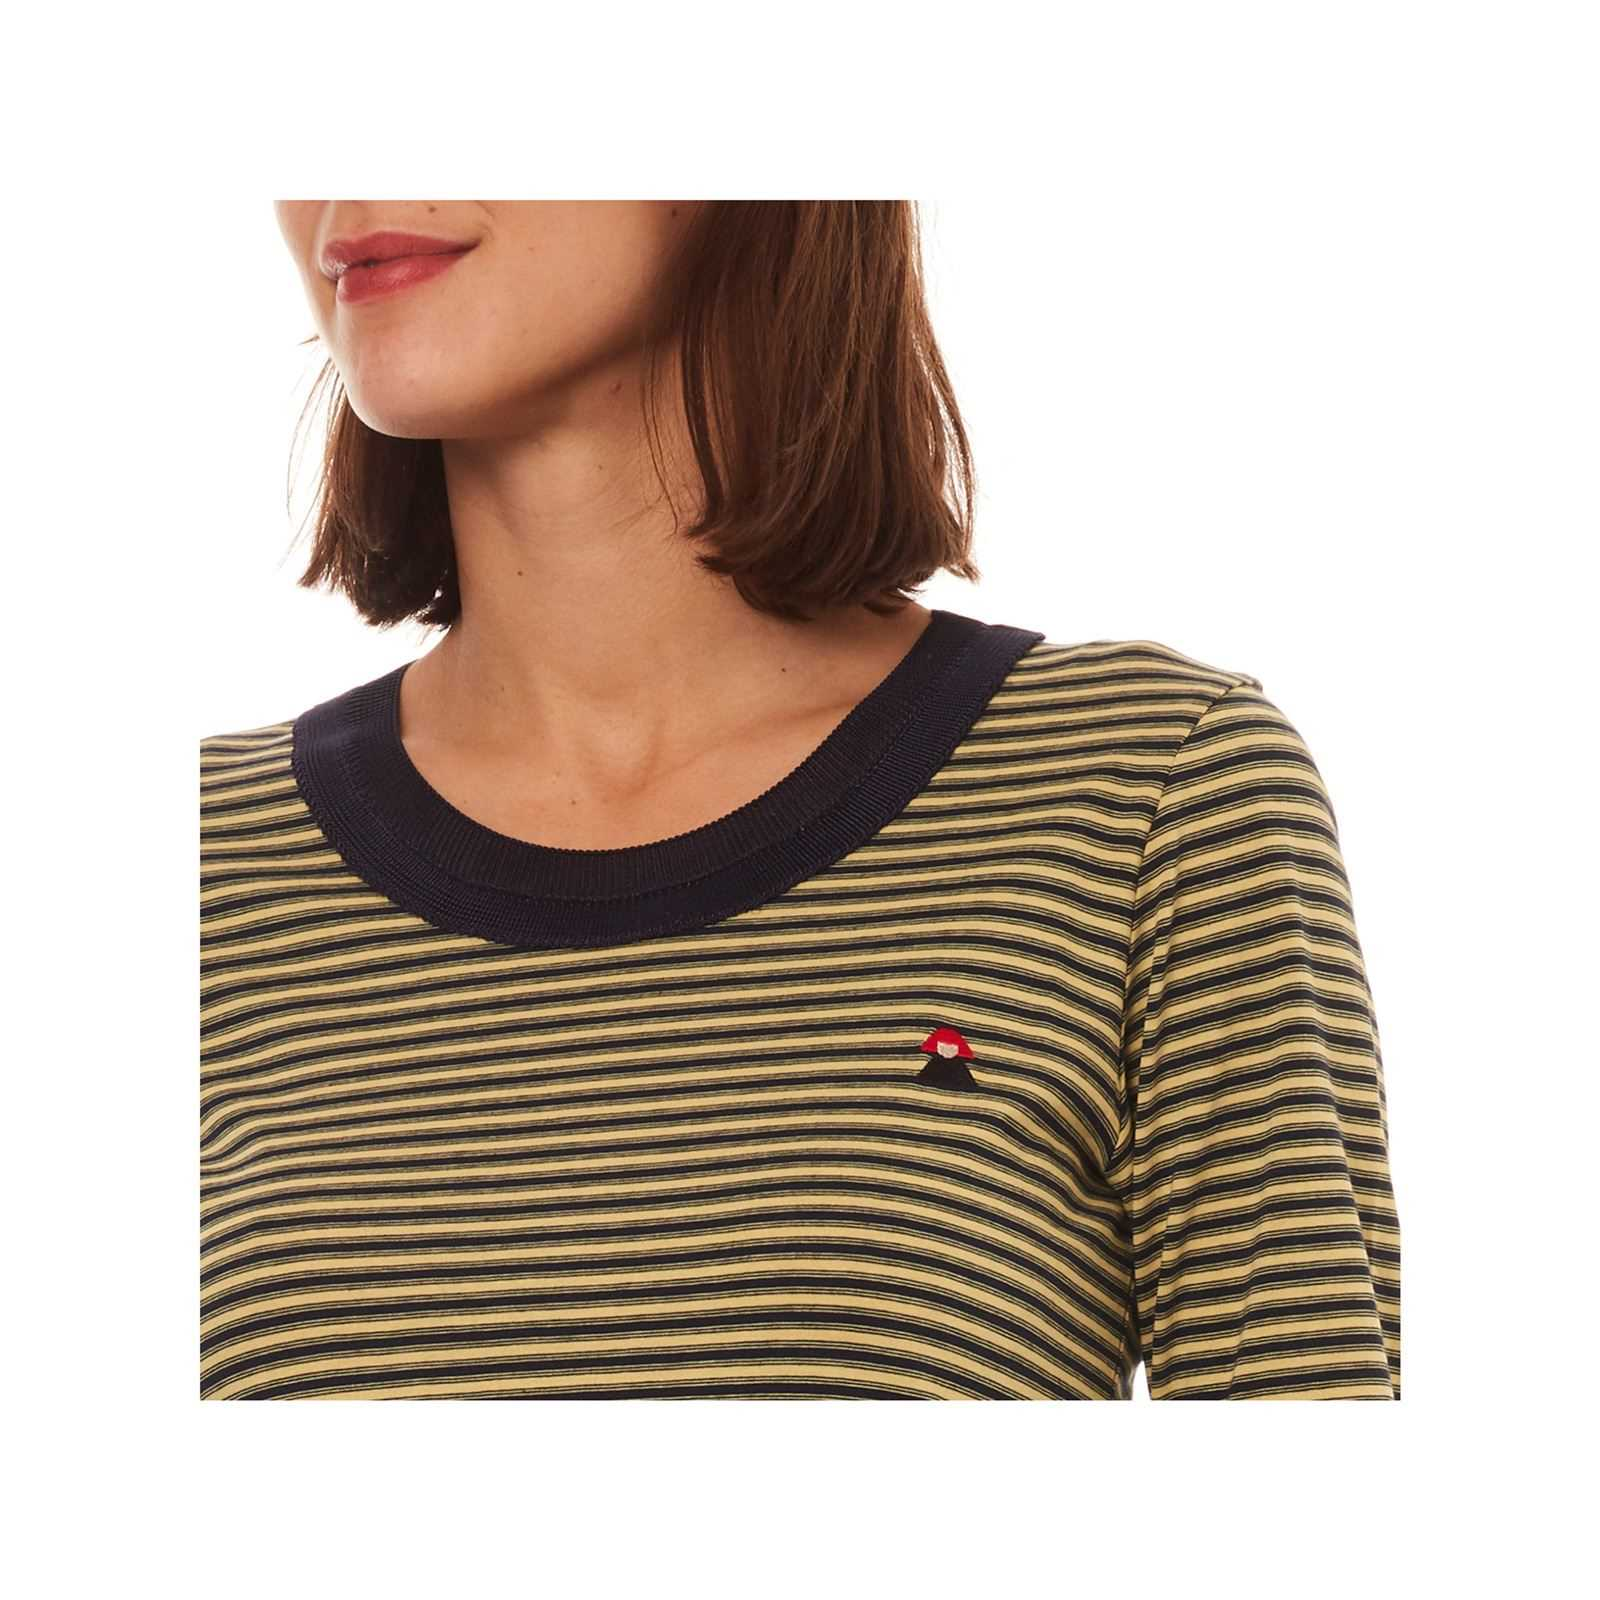 Rykiel LonguesJaune By Sonia V T Femme Manches shirt rBEQoCWedx